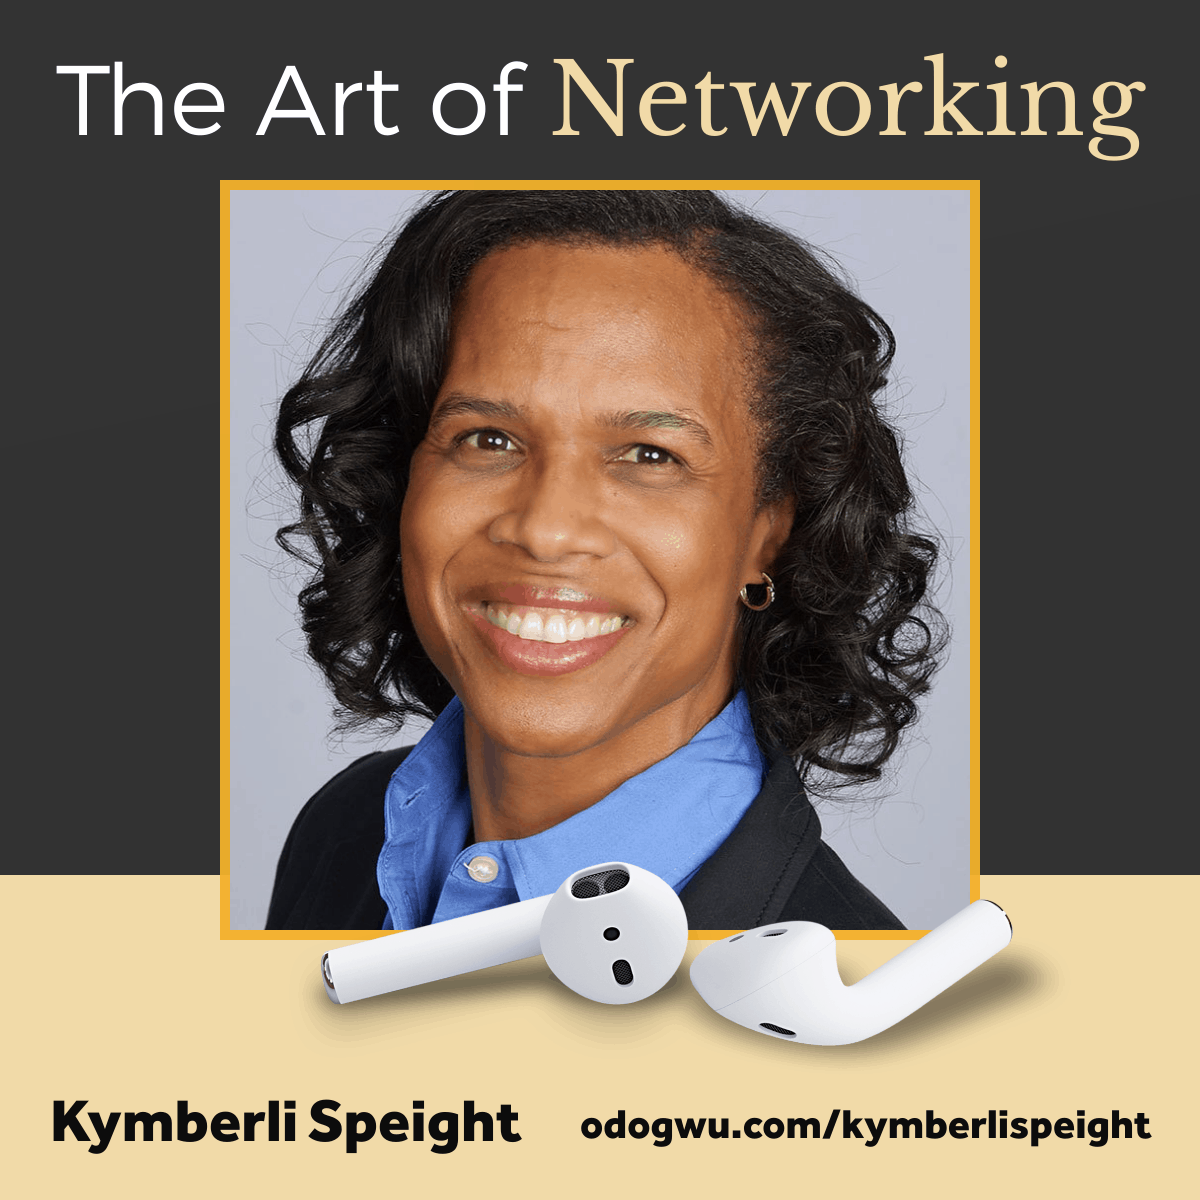 The Art of Networking with Kymberli Speight